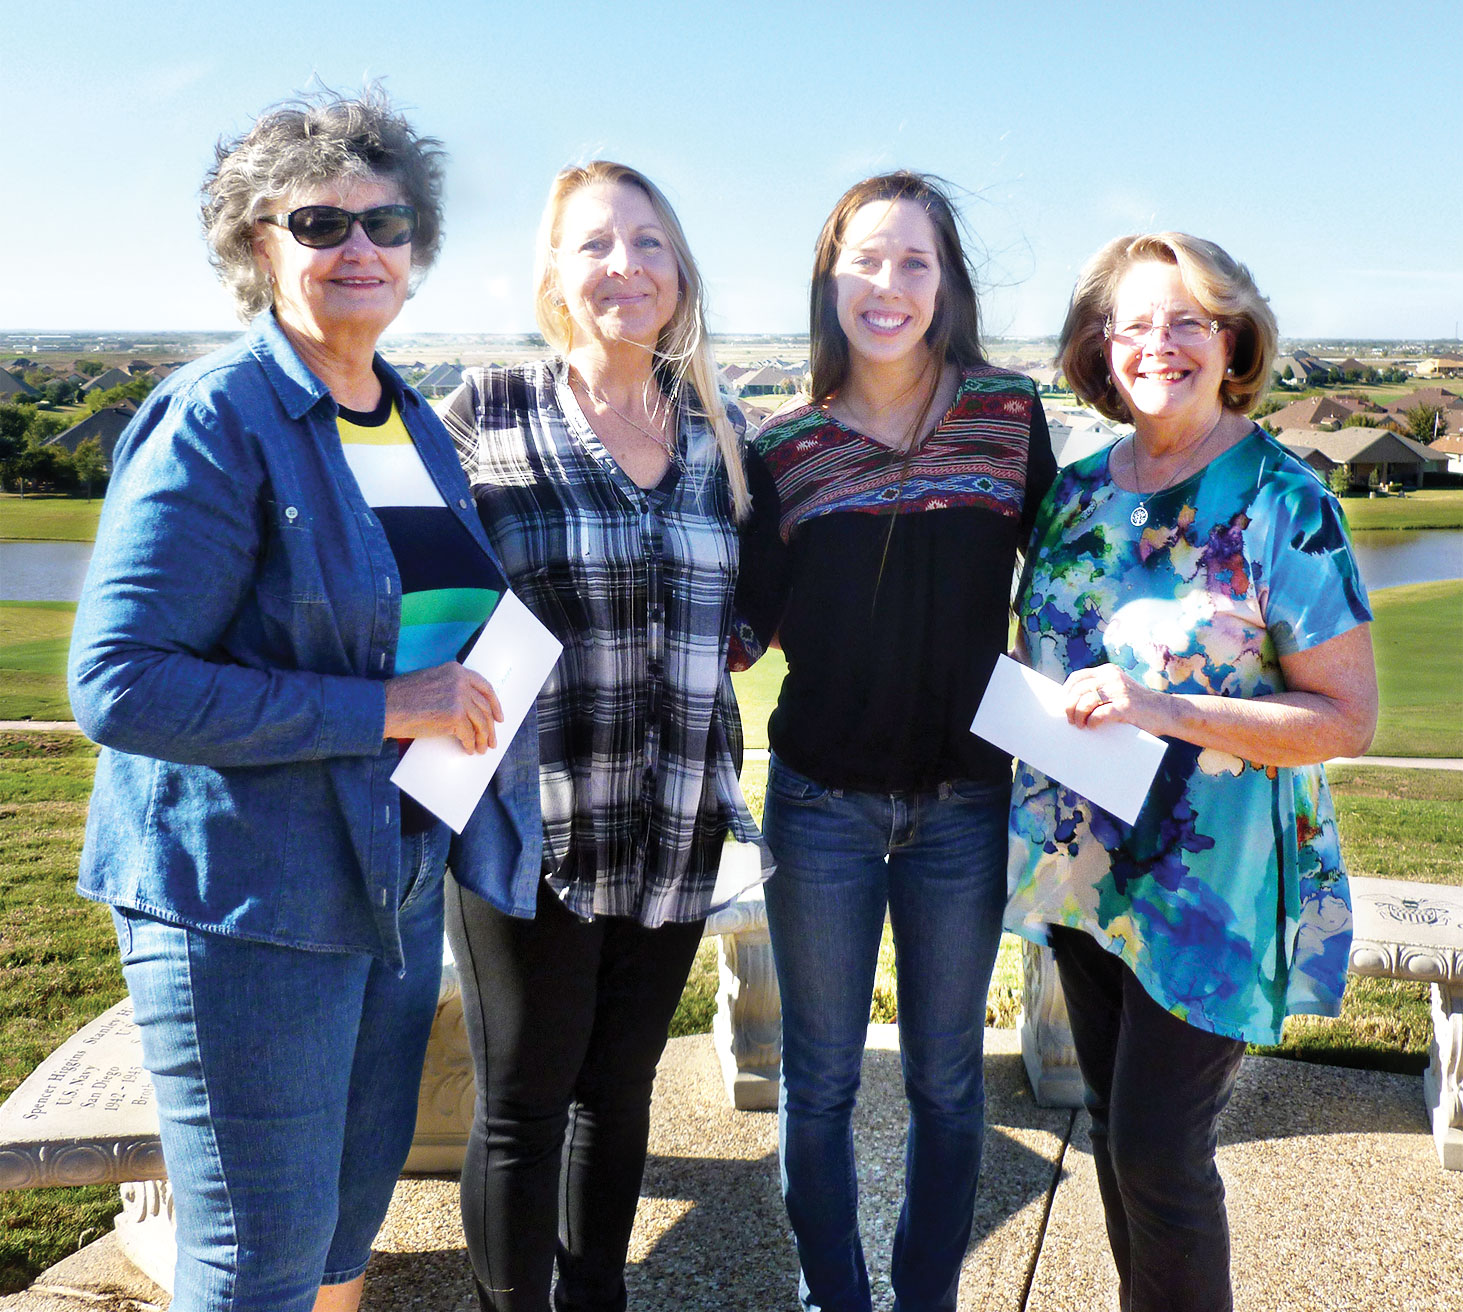 Fellowship at the Ranch Church members Doris Koenig, left, of Robson Ranch and Edie Jones, far right, present Lynnie Anderson, City Director, second from left, and Lexie Chamberlain, volunteer, a check from Fellowship at the Ranch.